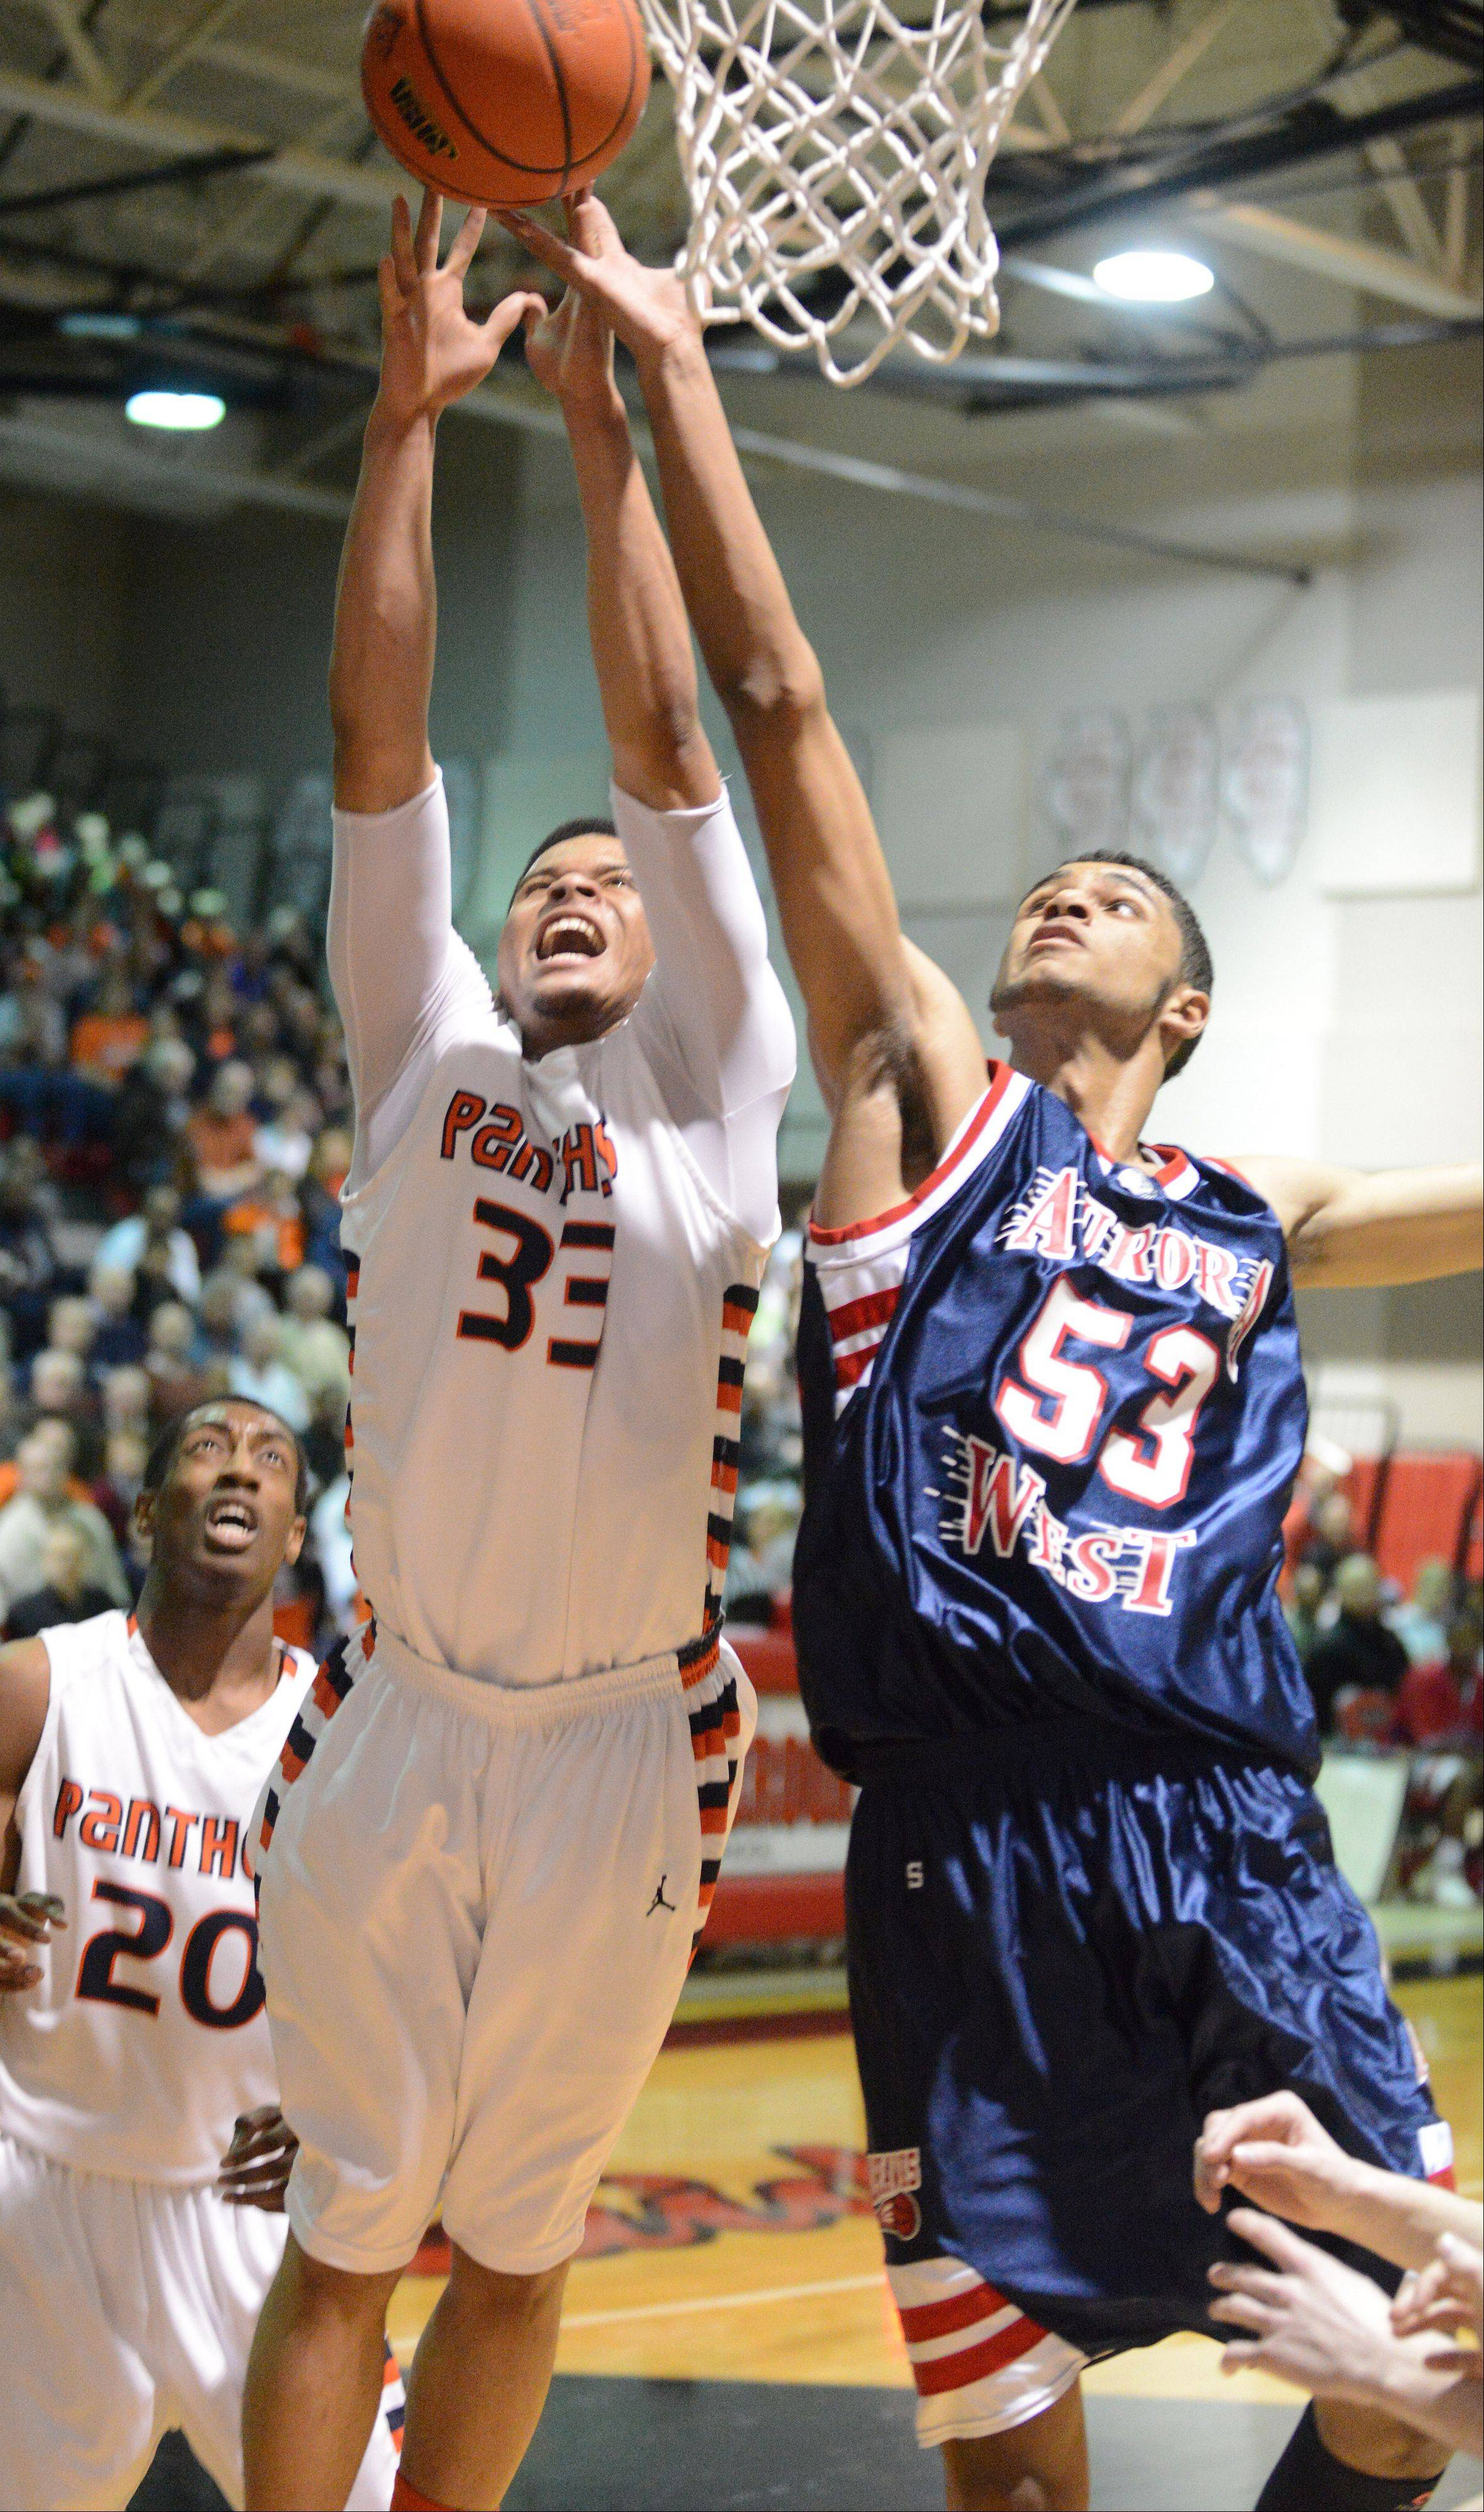 Images: West Aurora vs. Oswego, boys basketball